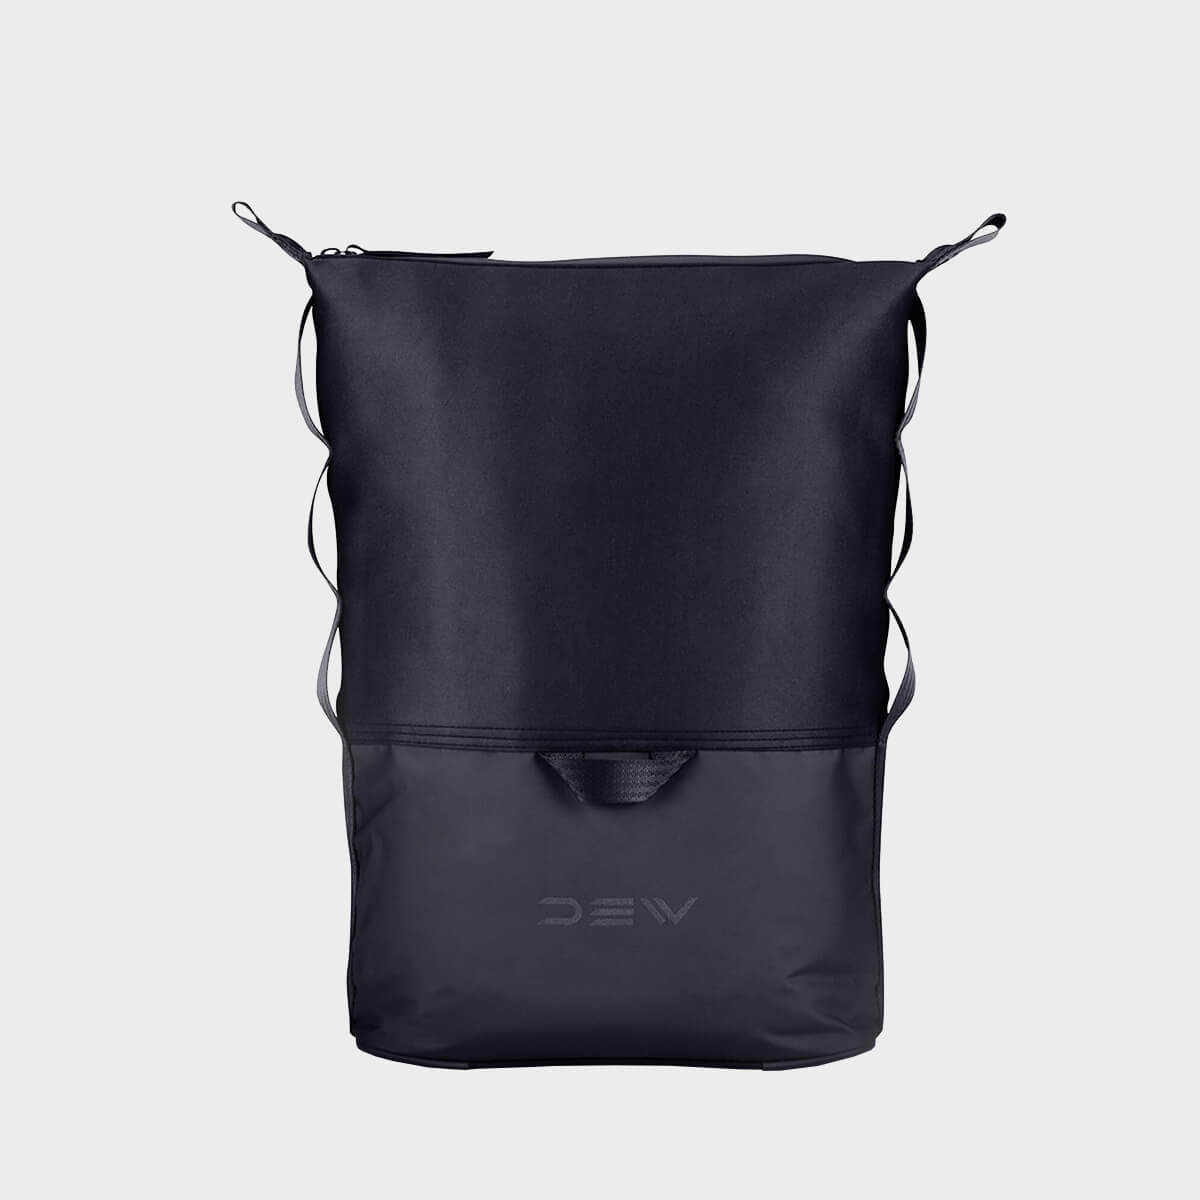 Verge Neoprime Black